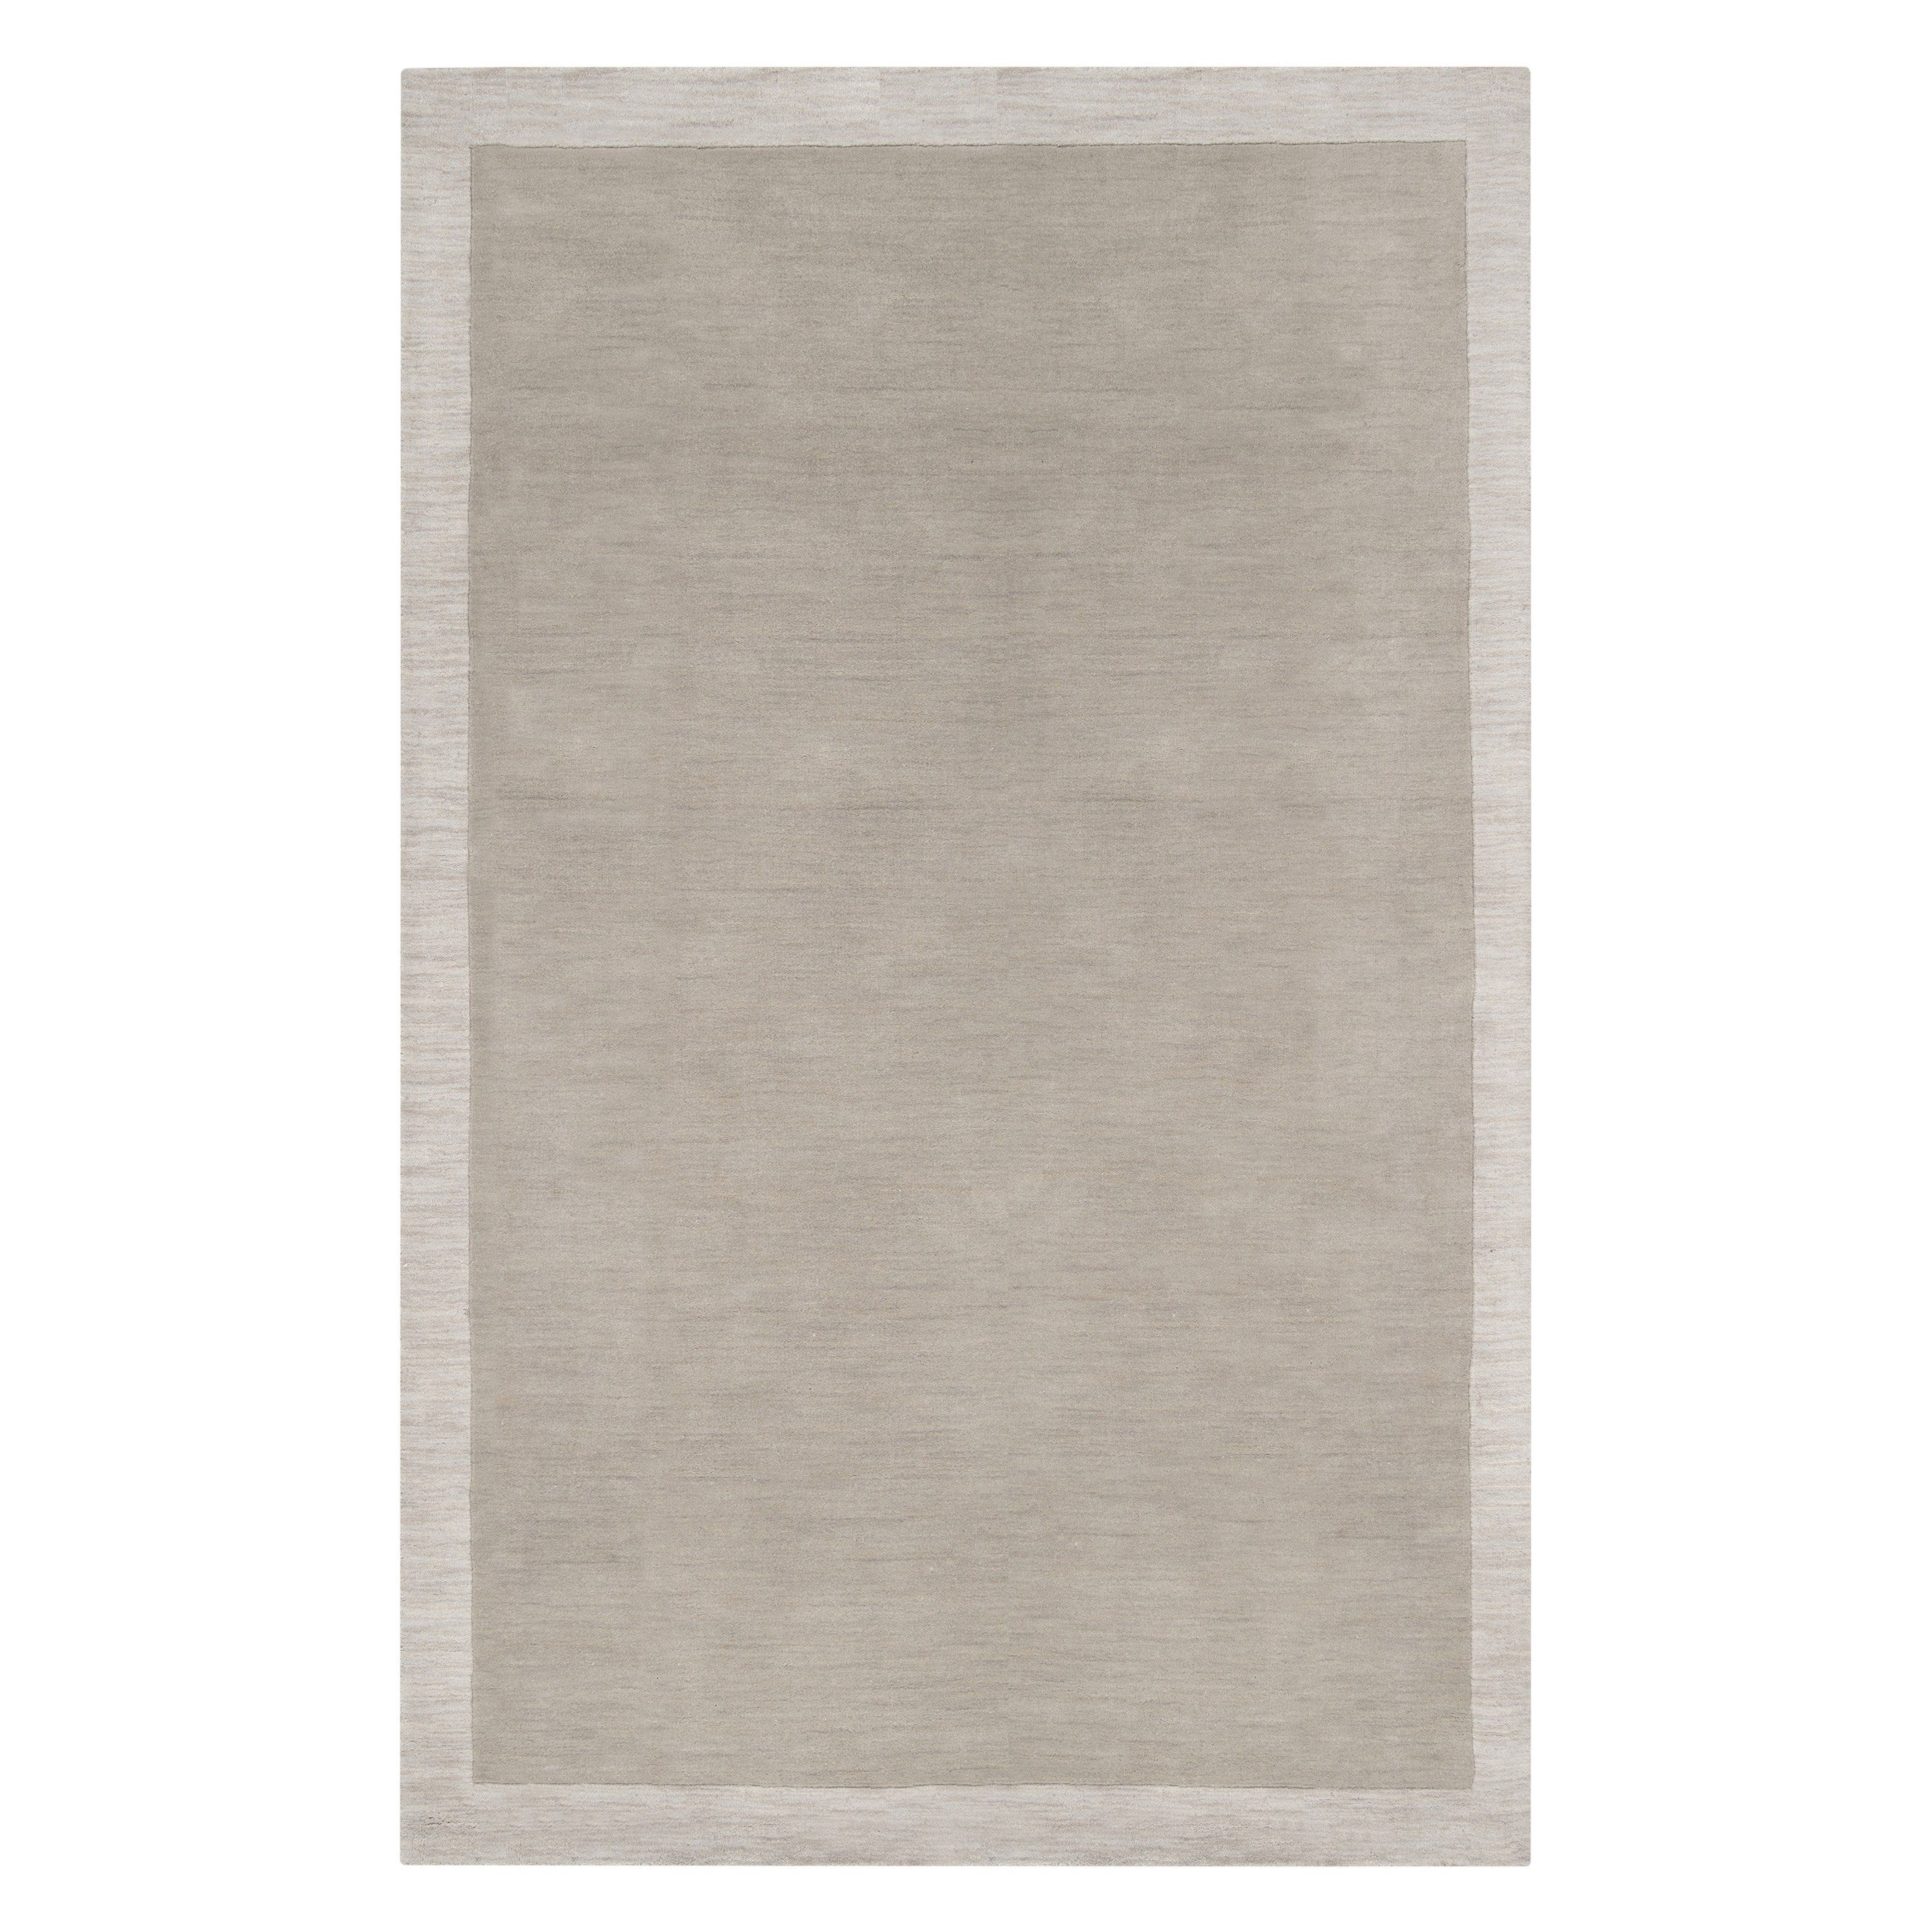 Angelo Home Madison Square Mds 1001 Area Rug Black Grey From